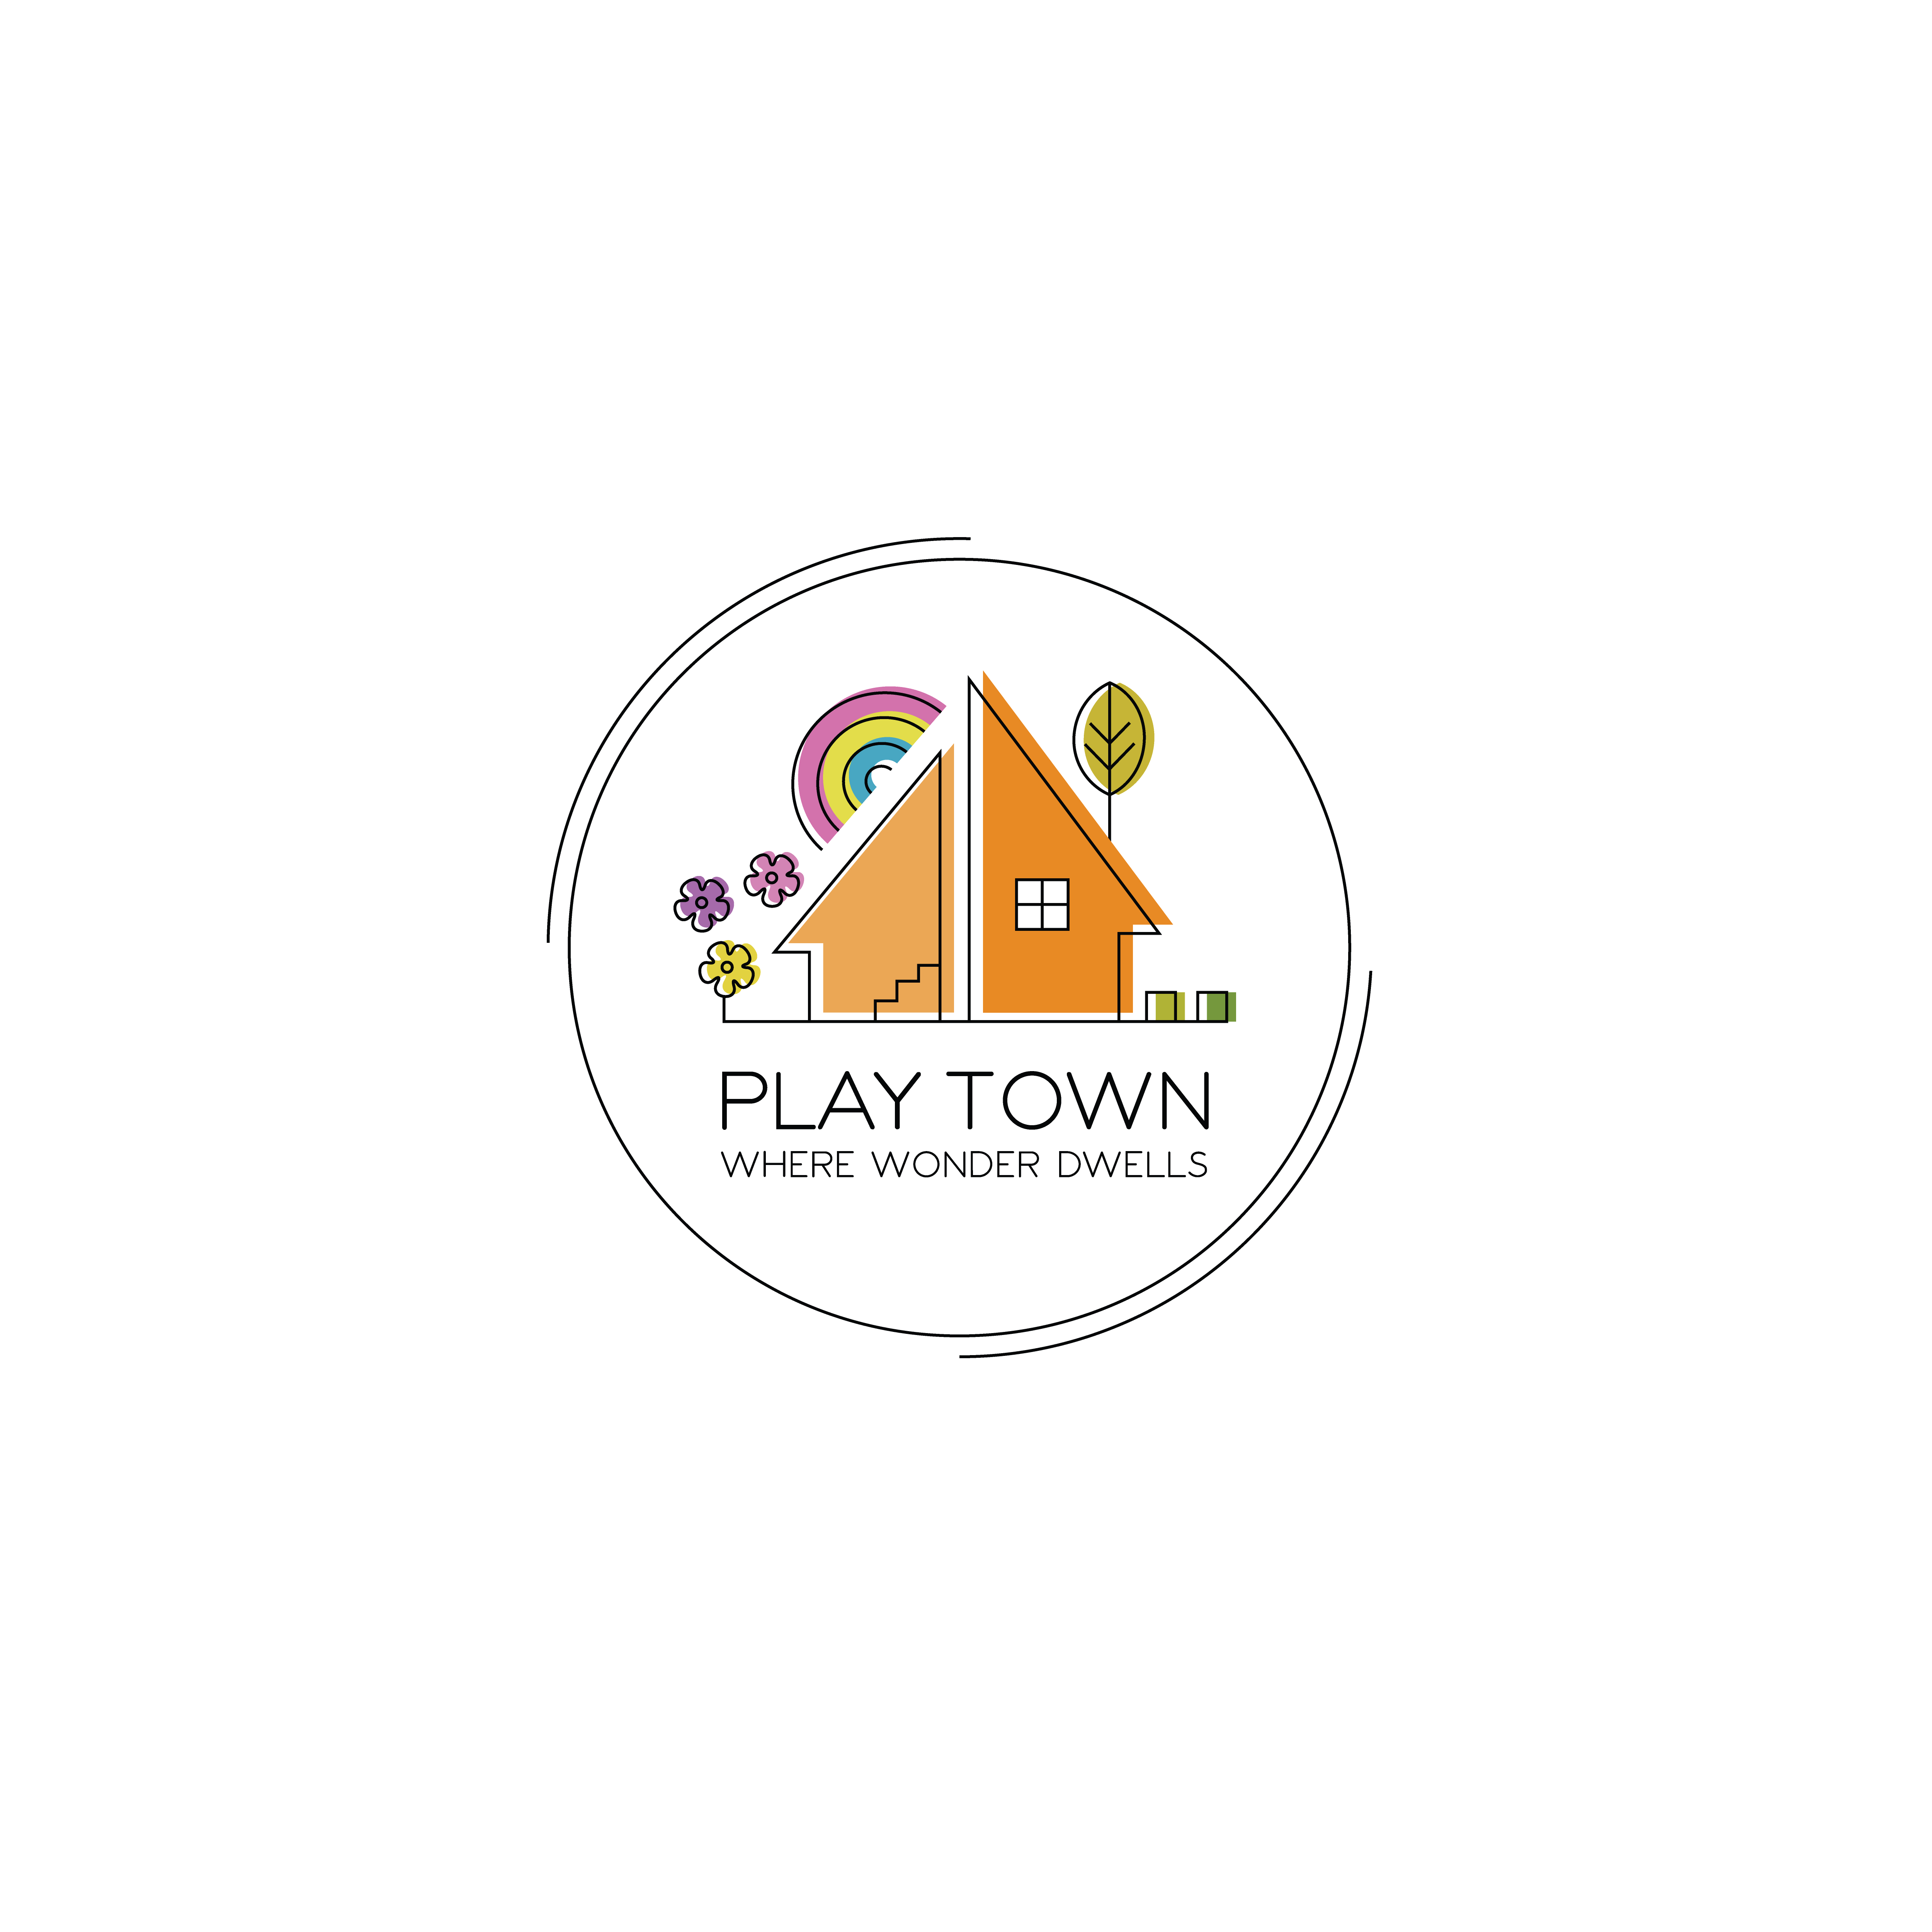 A logo to help families connect with nature & each other through play